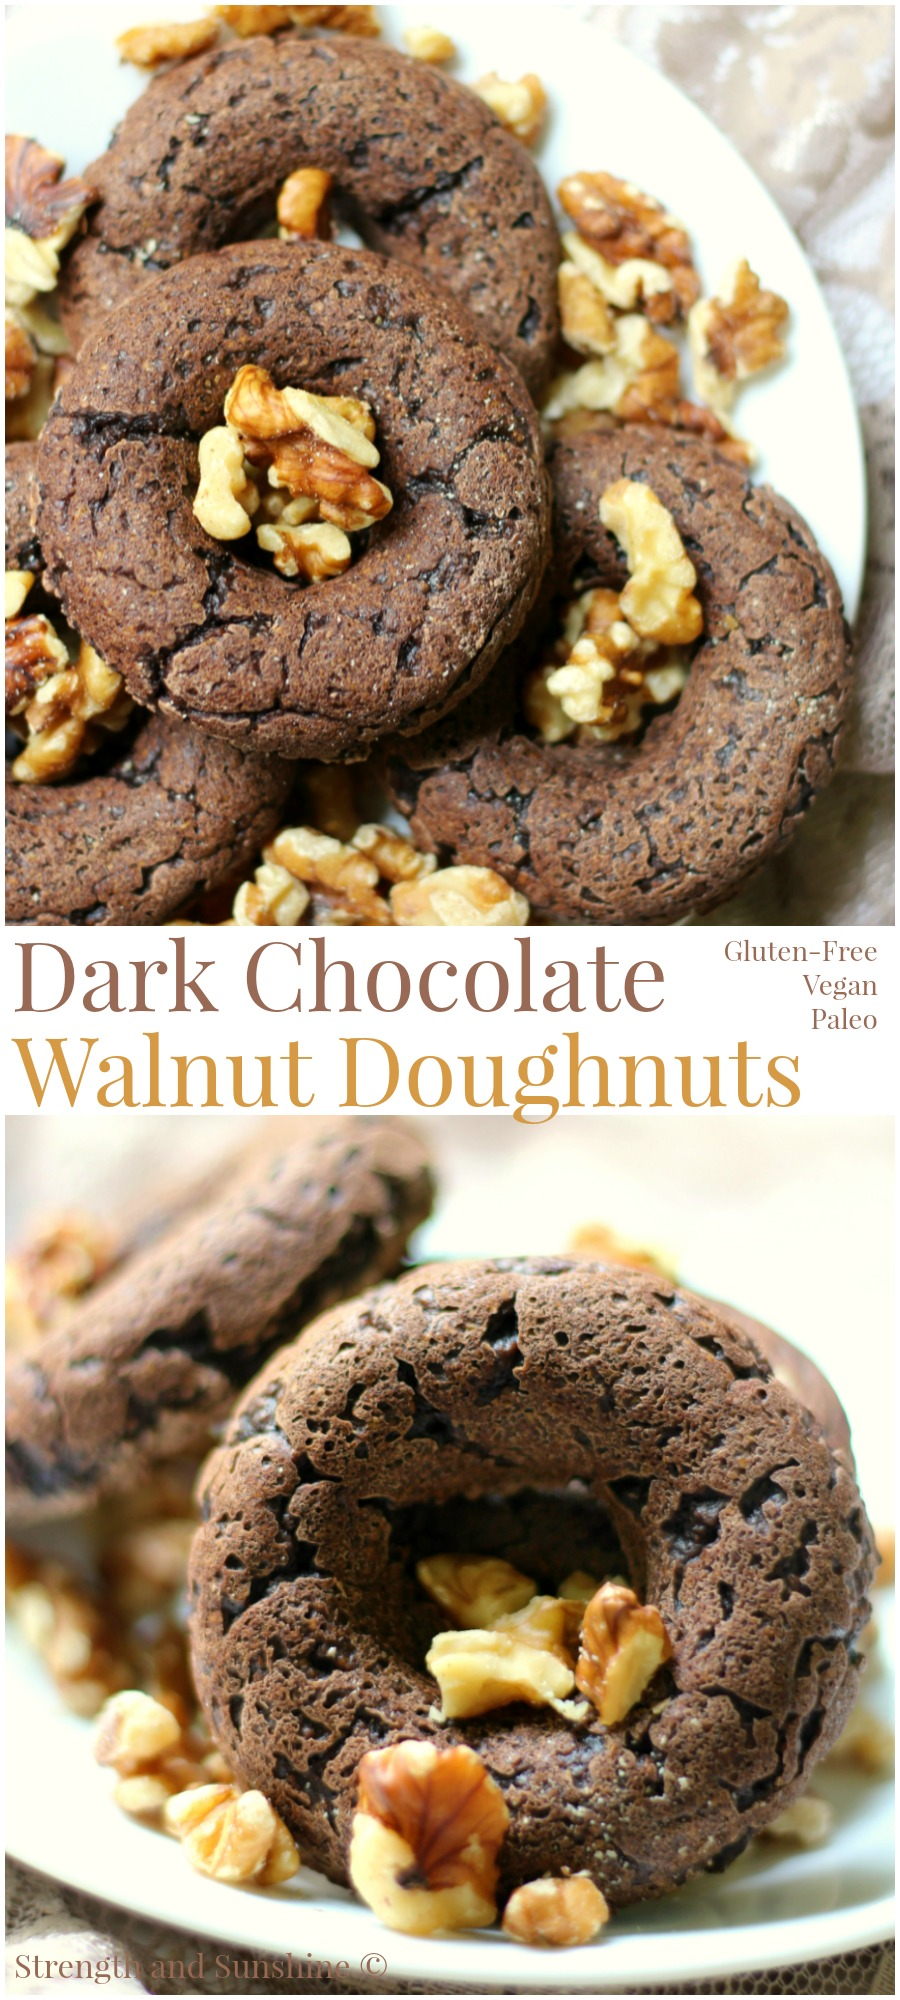 Dark Chocolate Walnut Doughnuts | Strength and Sunshine @RebeccaGF666 Decadent, but secretly healthy, Dark Chocolate Walnut Doughnuts! These gluten-free, vegan, & paleo doughnuts are baked breakfast perfection! Serve them with a cup of coffee or your afternoon tea! sponsored #SilkCrowd #Nutchello #lovemysilk @Silk